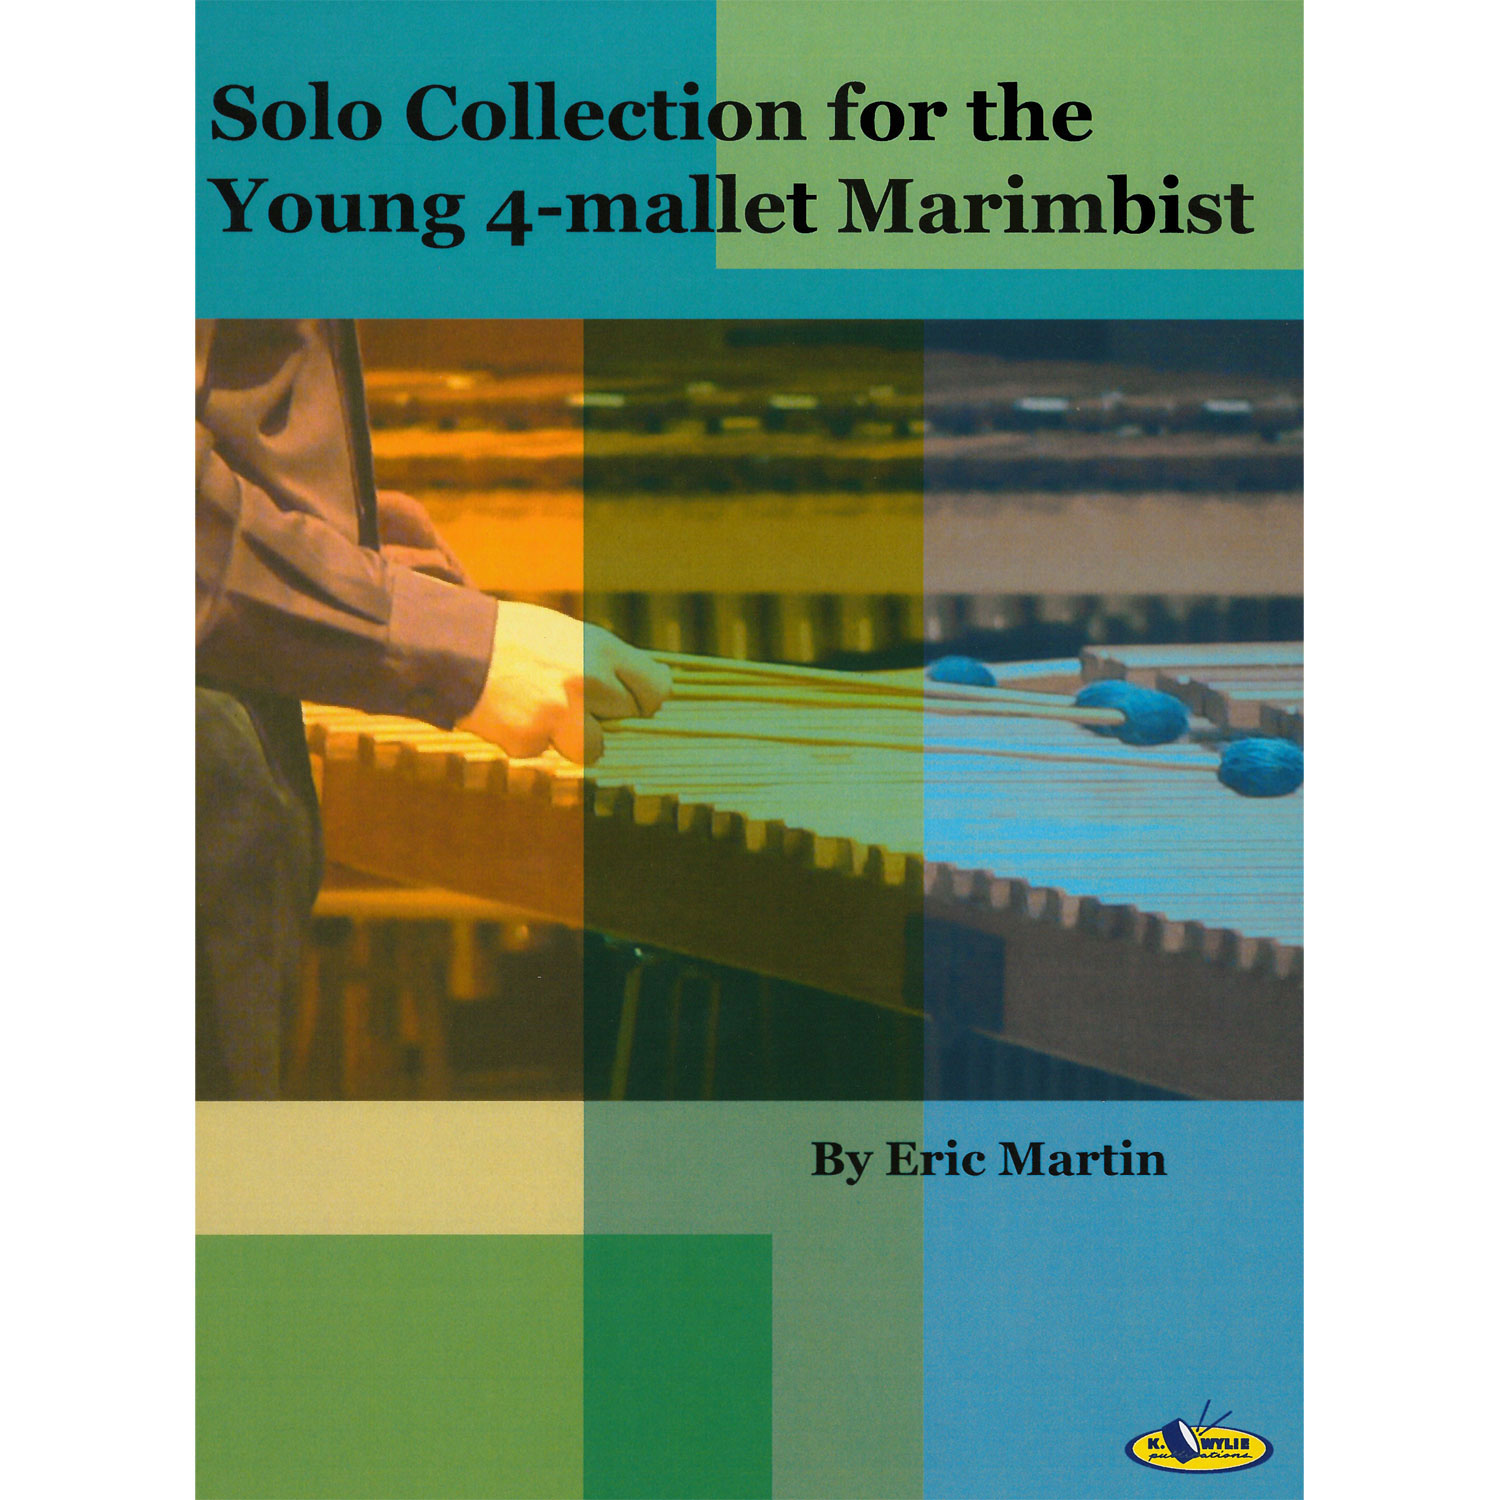 Solo Collection for the Young 4-Mallet Marimbist by Eric Martin